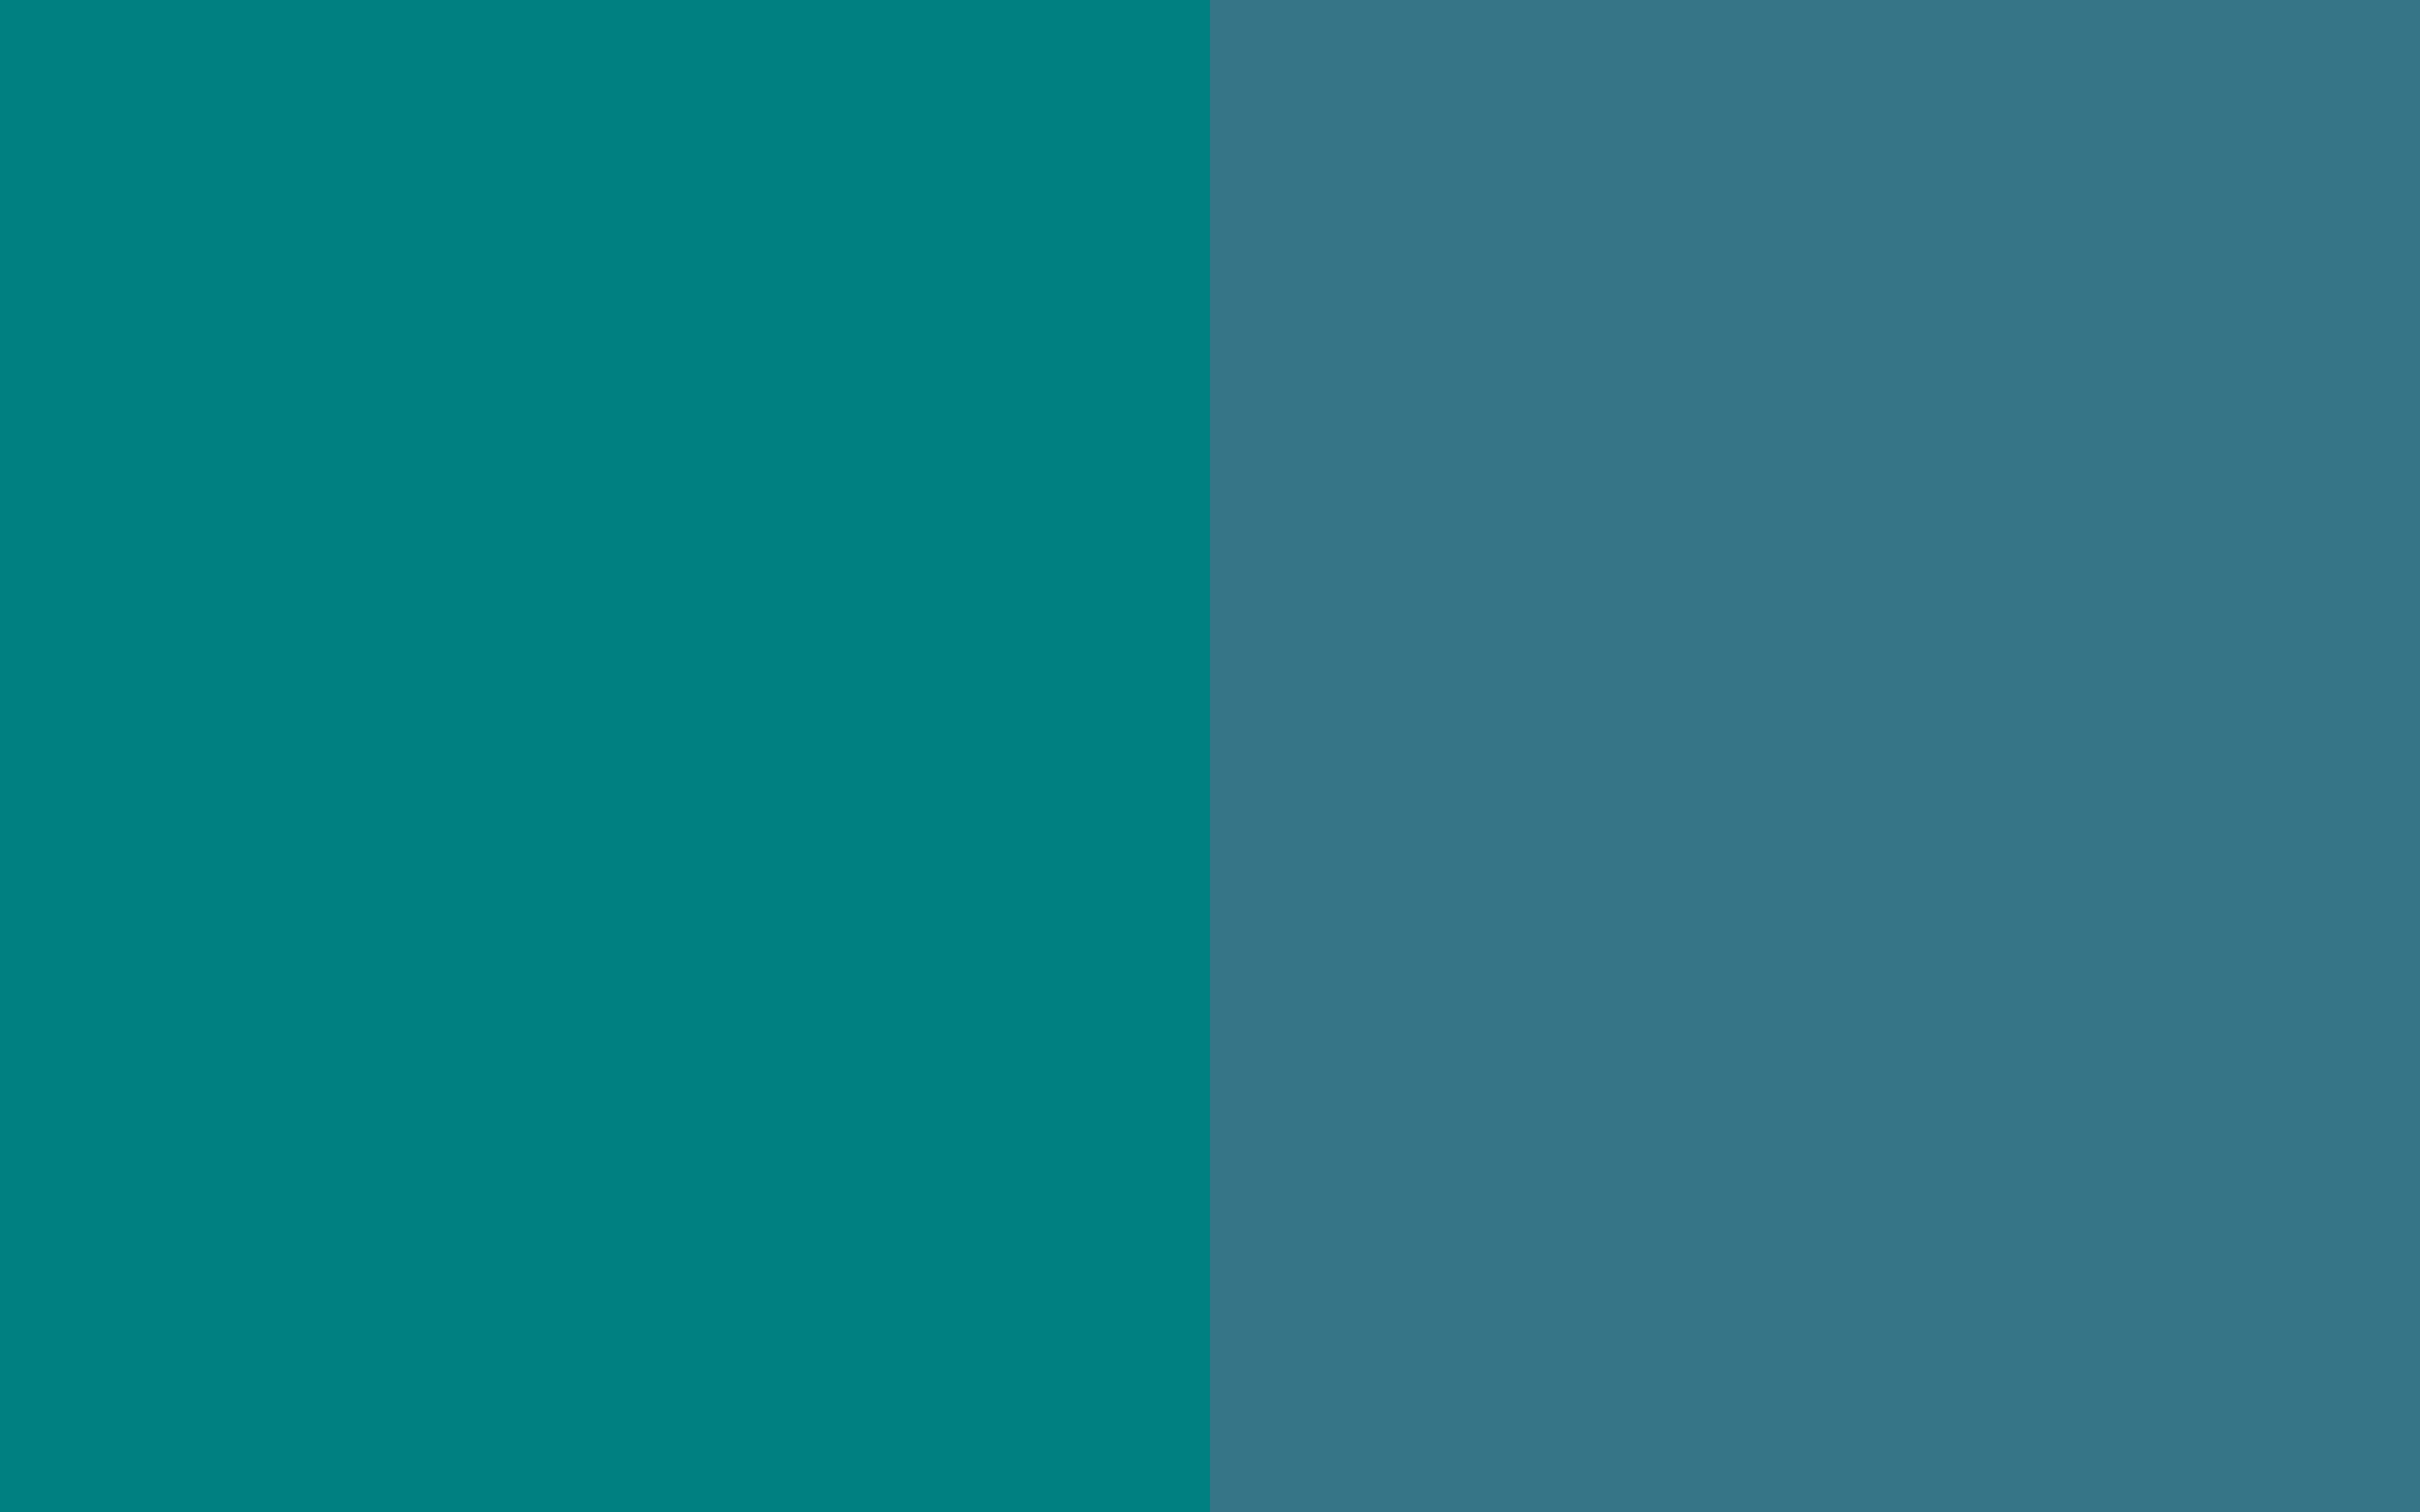 2560x1600 resolution Teal and Teal Blue solid two color background 2560x1600